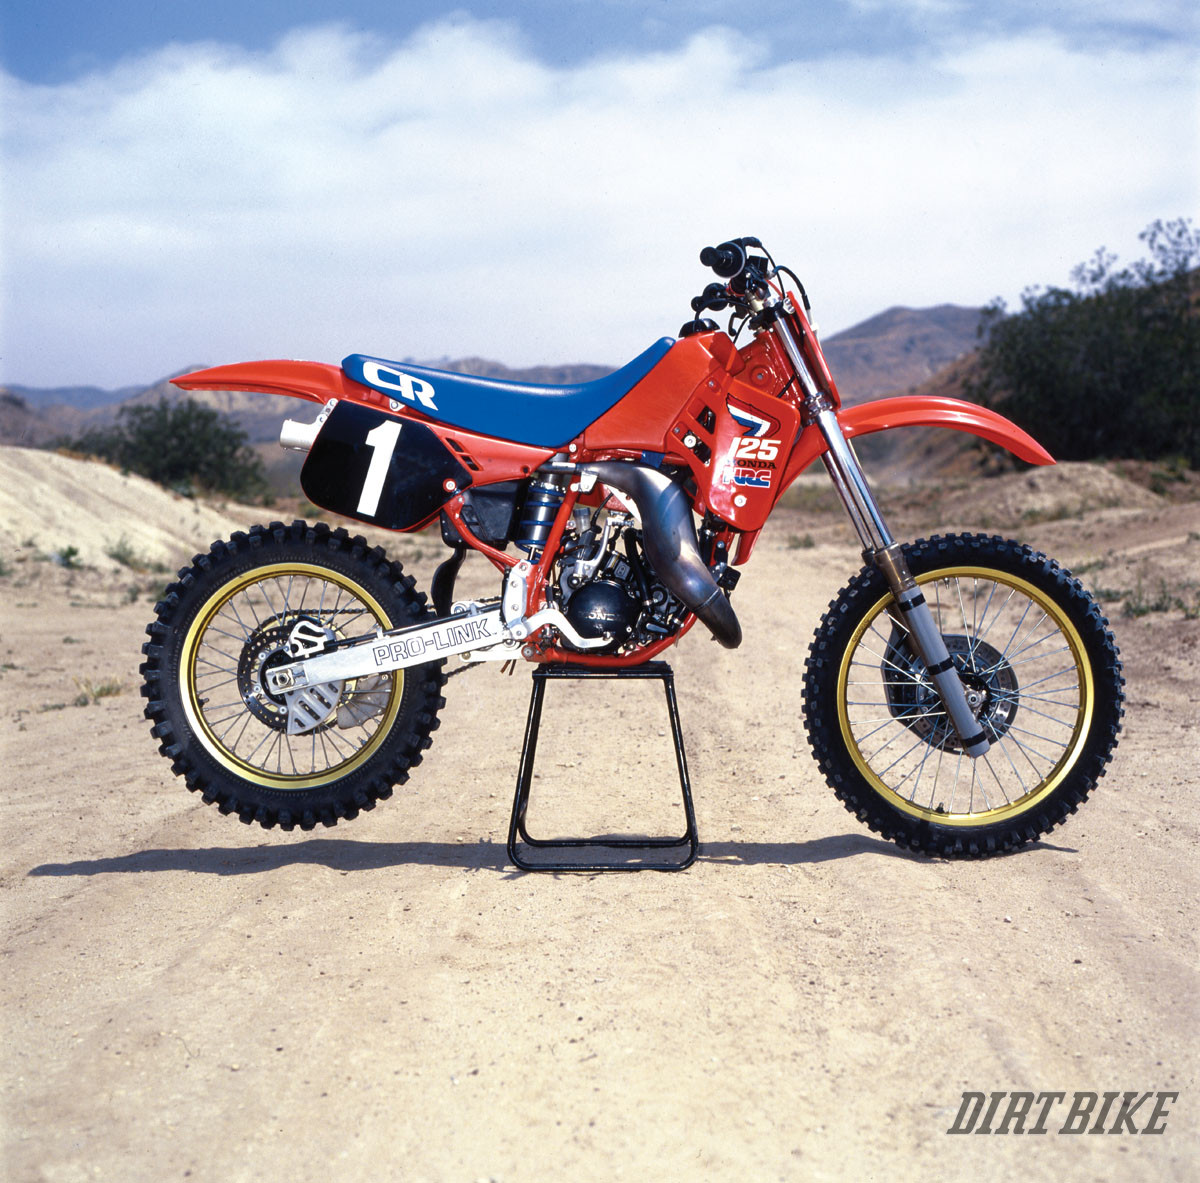 REMEMBER THE HONDA ELSINORE! | Dirt Bike Magazine on lighting diagrams, pinout diagrams, motor diagrams, honda motorcycle repair diagrams, transformer diagrams, sincgars radio configurations diagrams, switch diagrams, engine diagrams, electrical diagrams, hvac diagrams, troubleshooting diagrams, electronic circuit diagrams, gmc fuse box diagrams, friendship bracelet diagrams, snatch block diagrams, internet of things diagrams, series and parallel circuits diagrams, battery diagrams, led circuit diagrams, smart car diagrams,